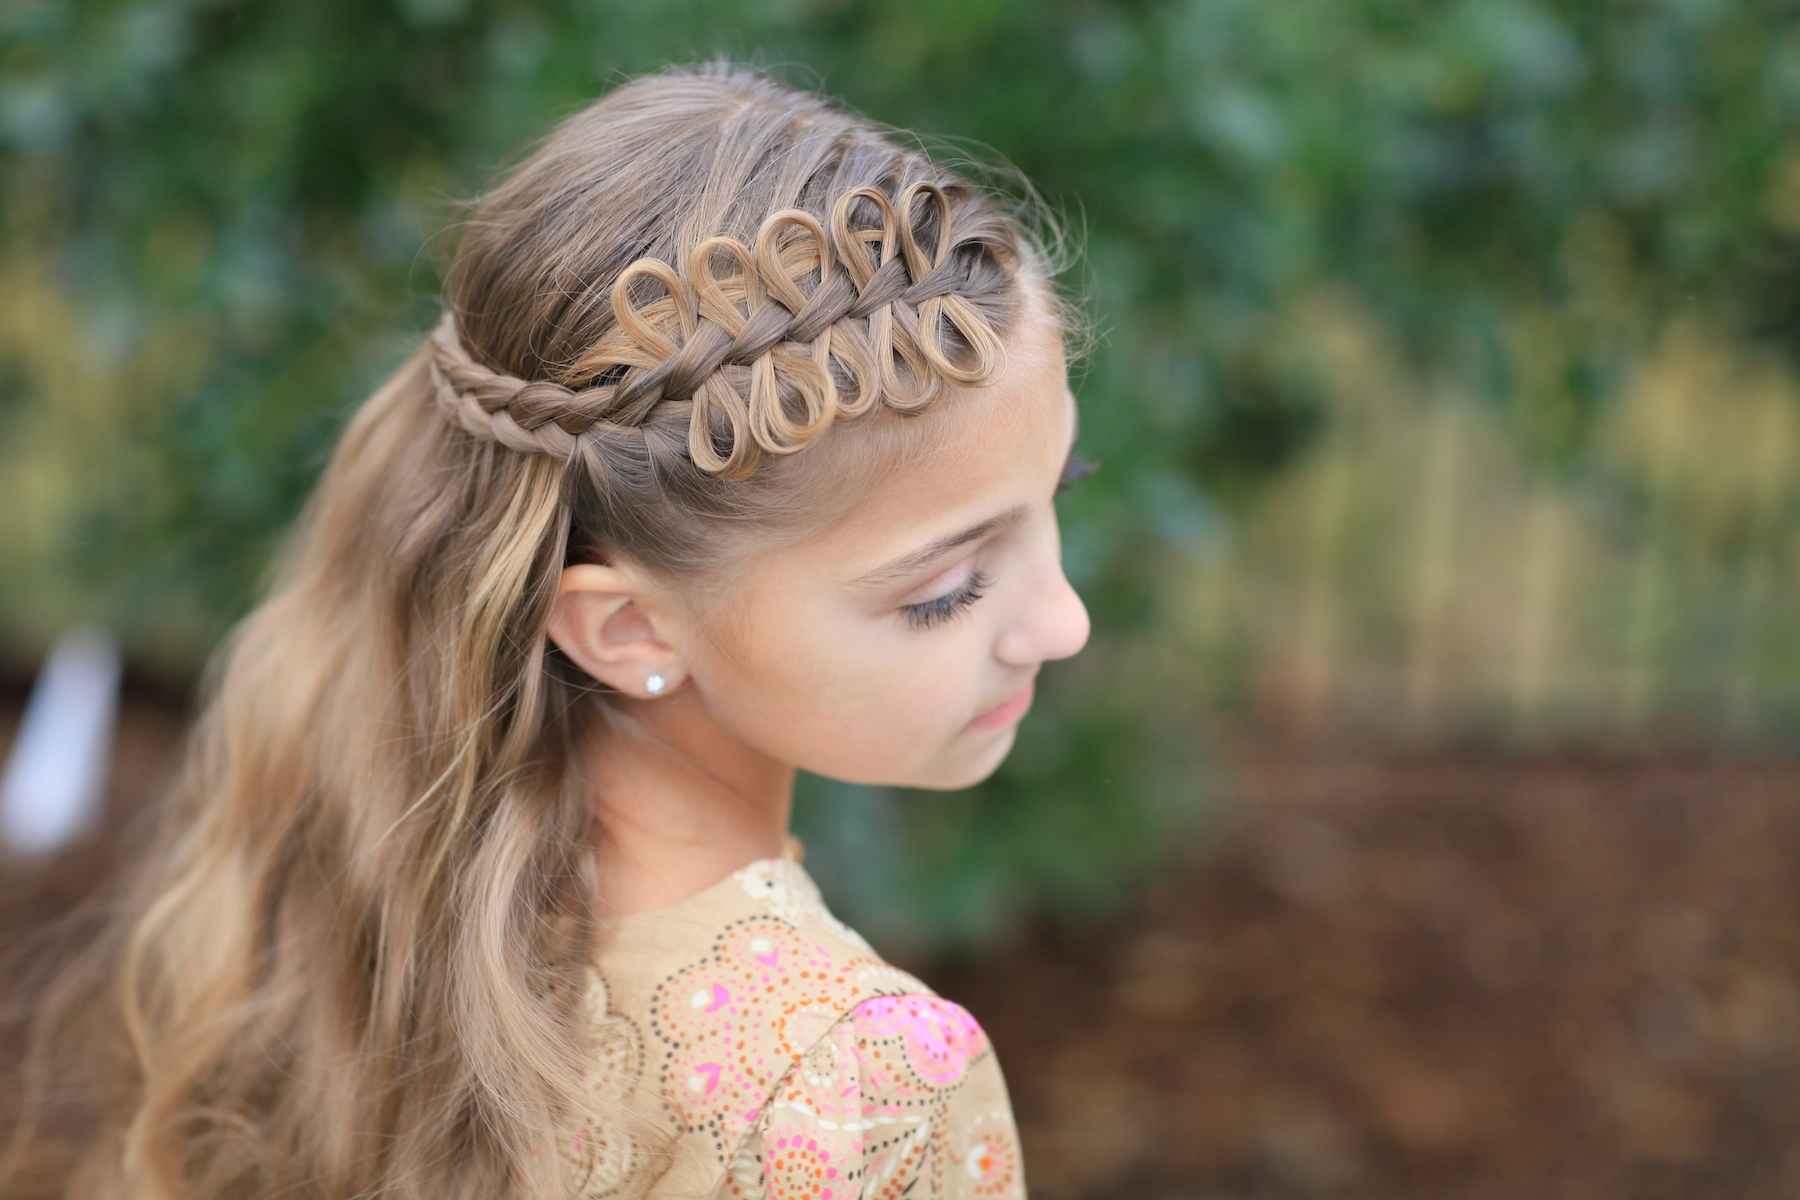 Astounding 25 Little Girl Hairstyles You Can Do Yourself Hairstyle Inspiration Daily Dogsangcom